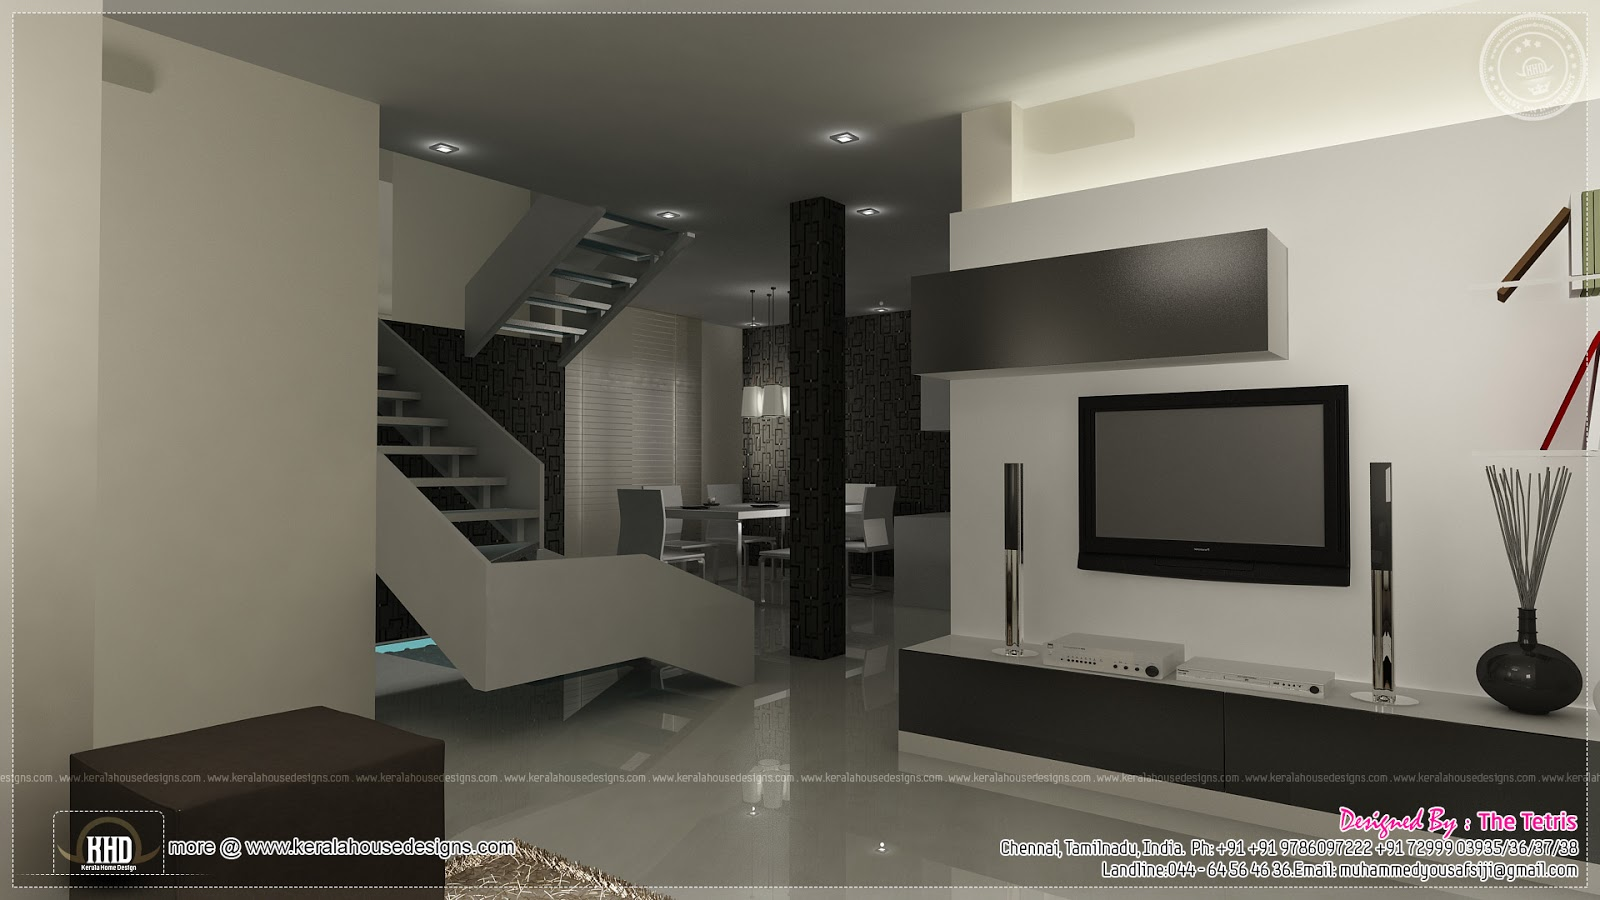 Interior design renderings by tetris architects chennai - Home interior designs ...